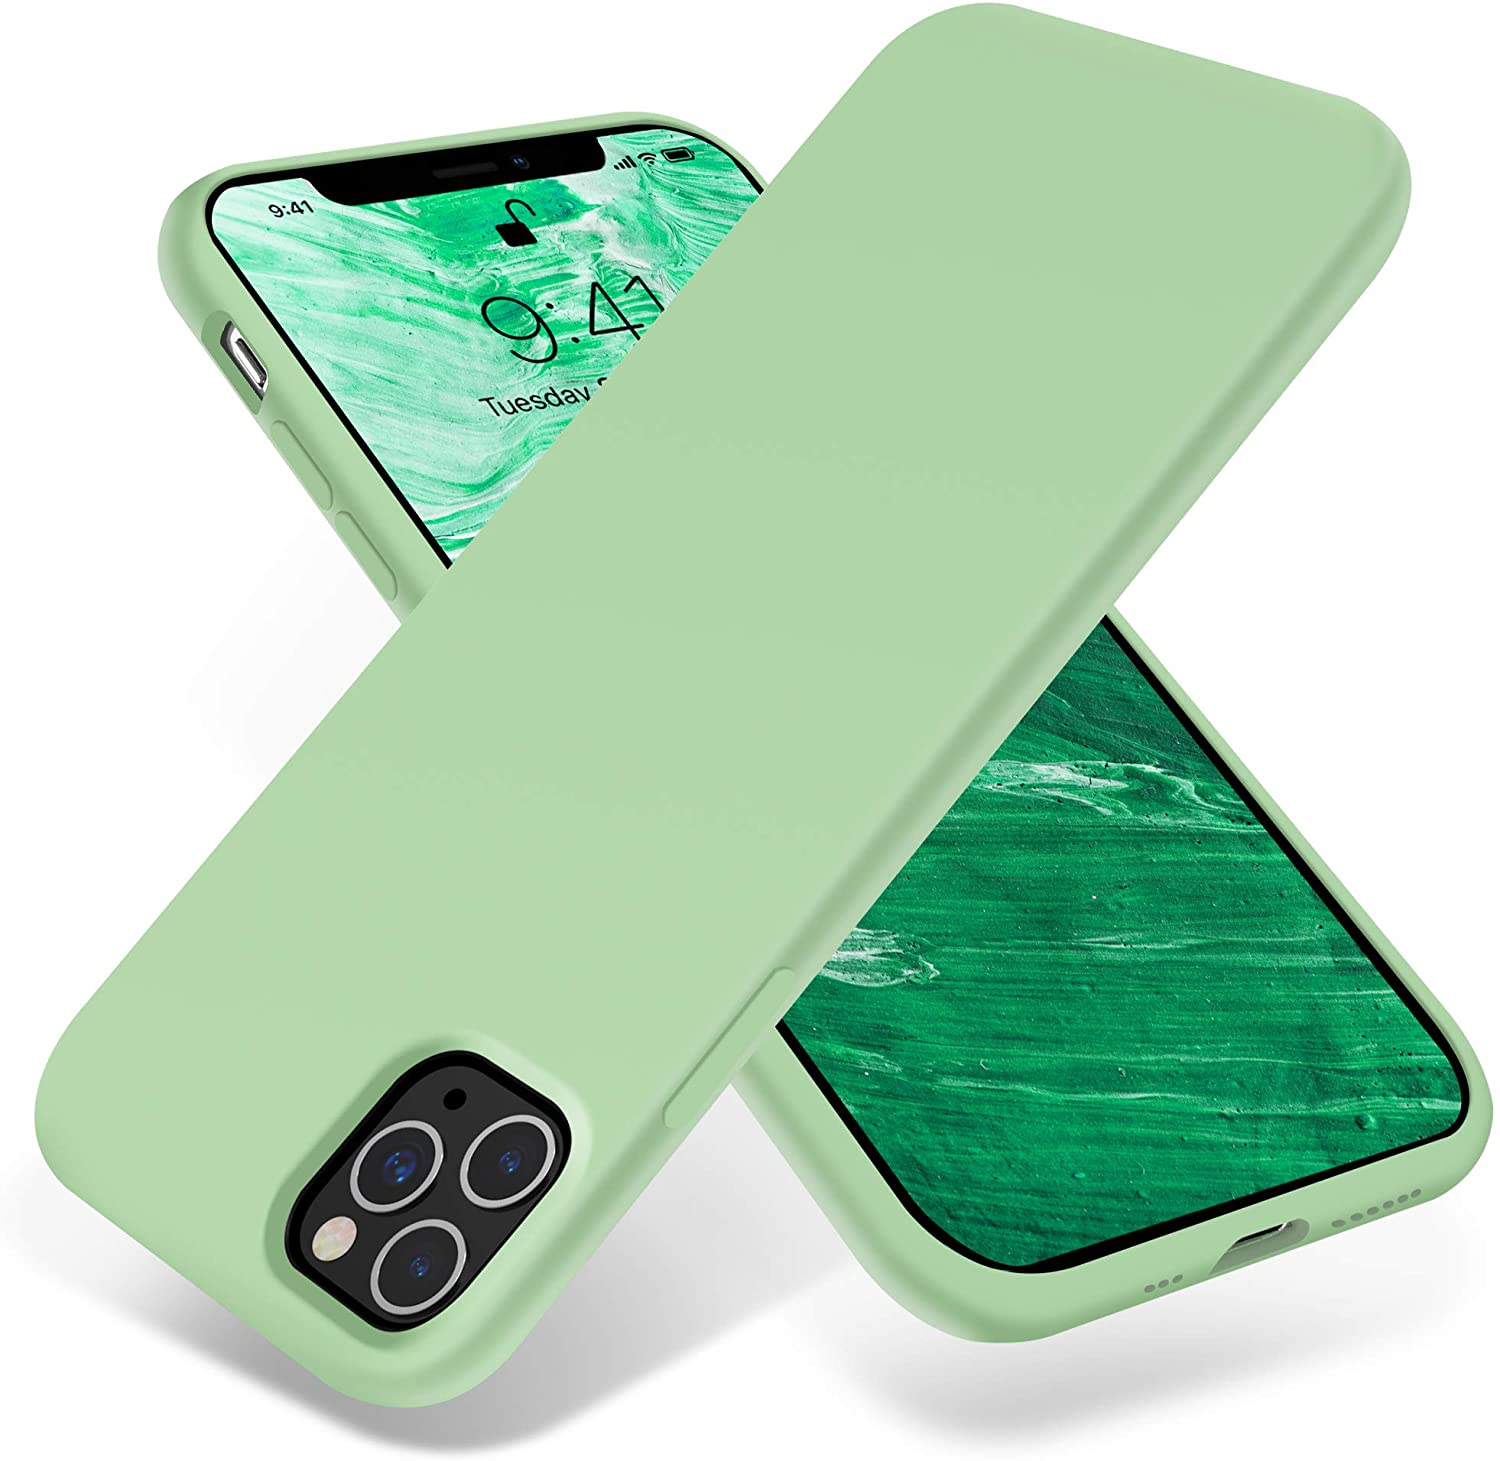 OTOFLY iPhone 11 Pro Case,Ultra Slim Fit iPhone Case Liquid Silicone Gel Cover with Full Body Protection Anti-Scratch Shockproof Case Compatible with iPhone 11 Pro (Tea Green)